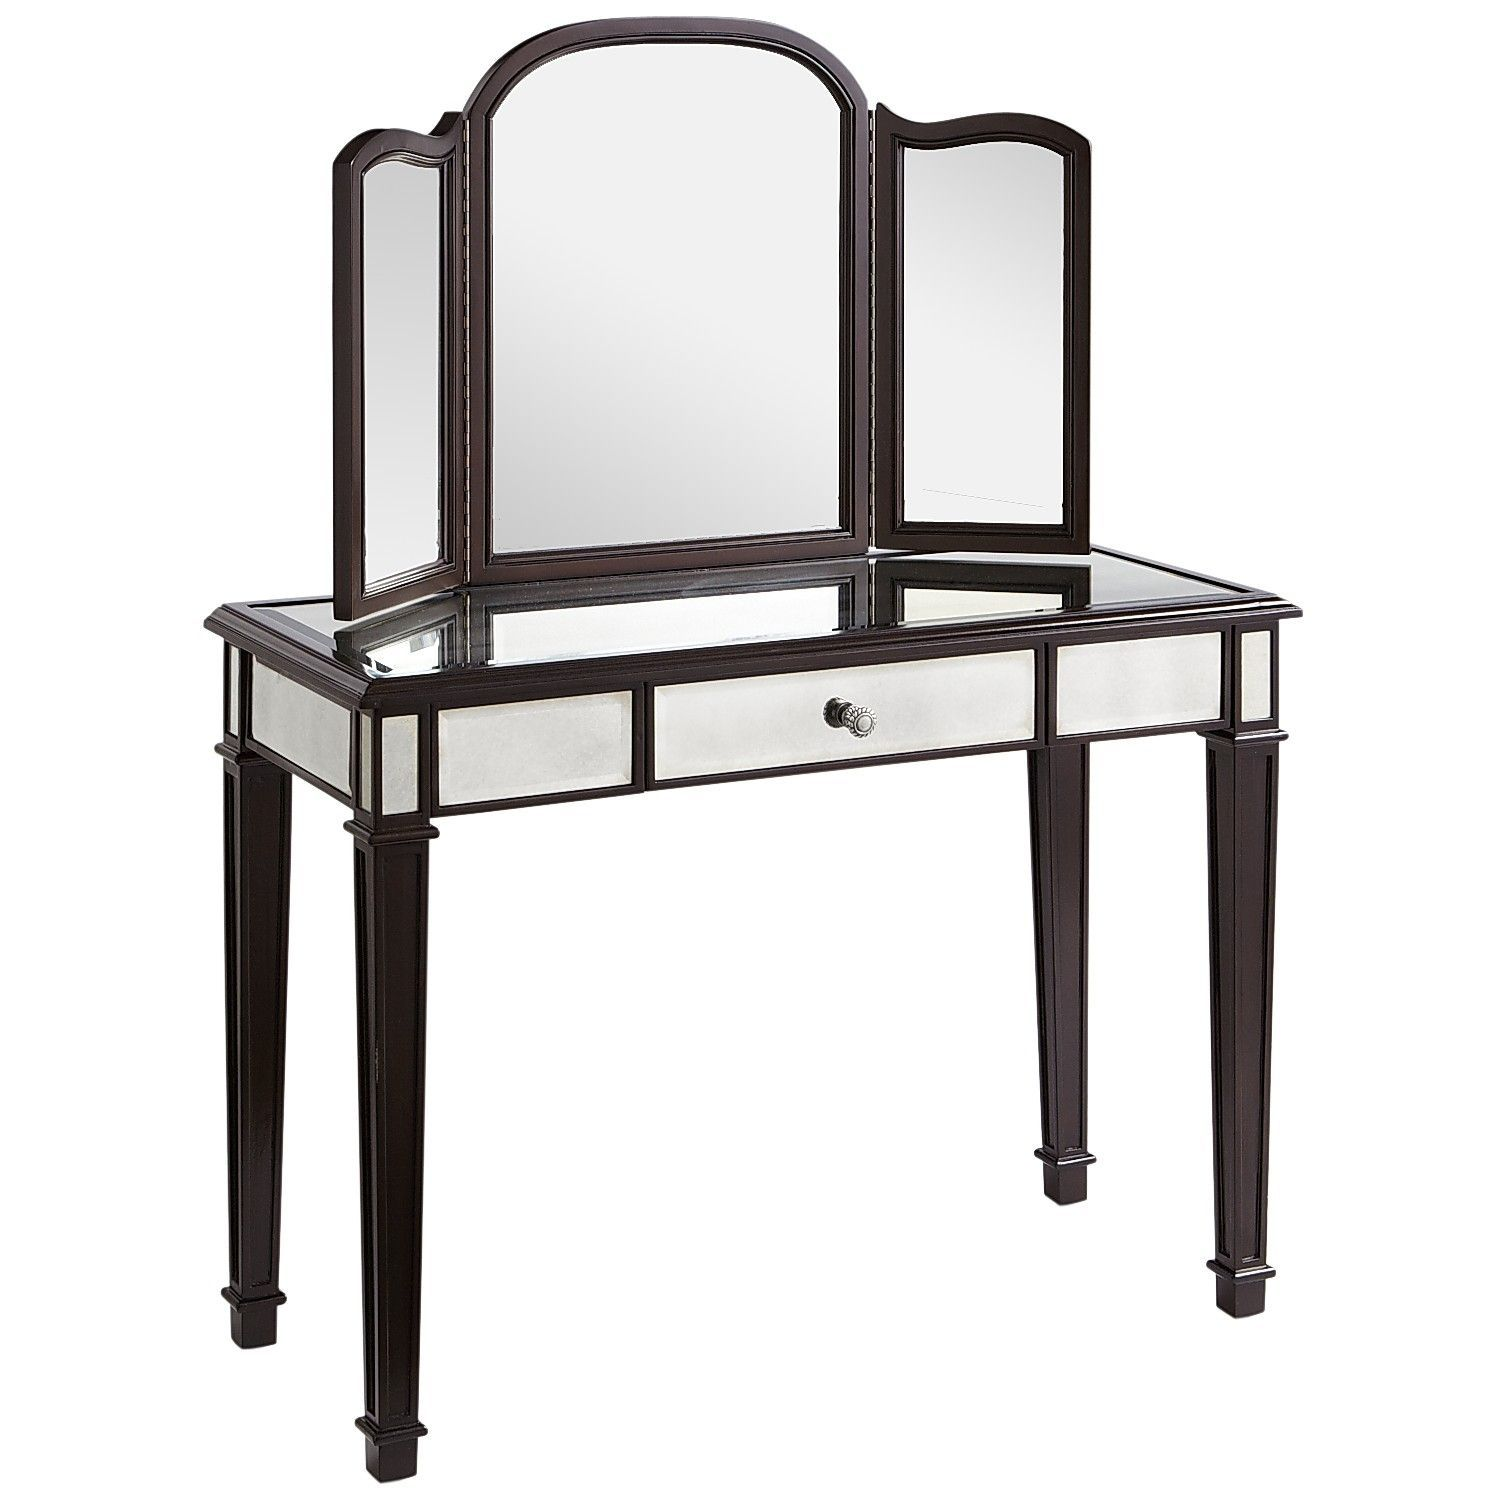 The Glamorous Pier 1 Hayworth Espresso Mirror Vanity Is About